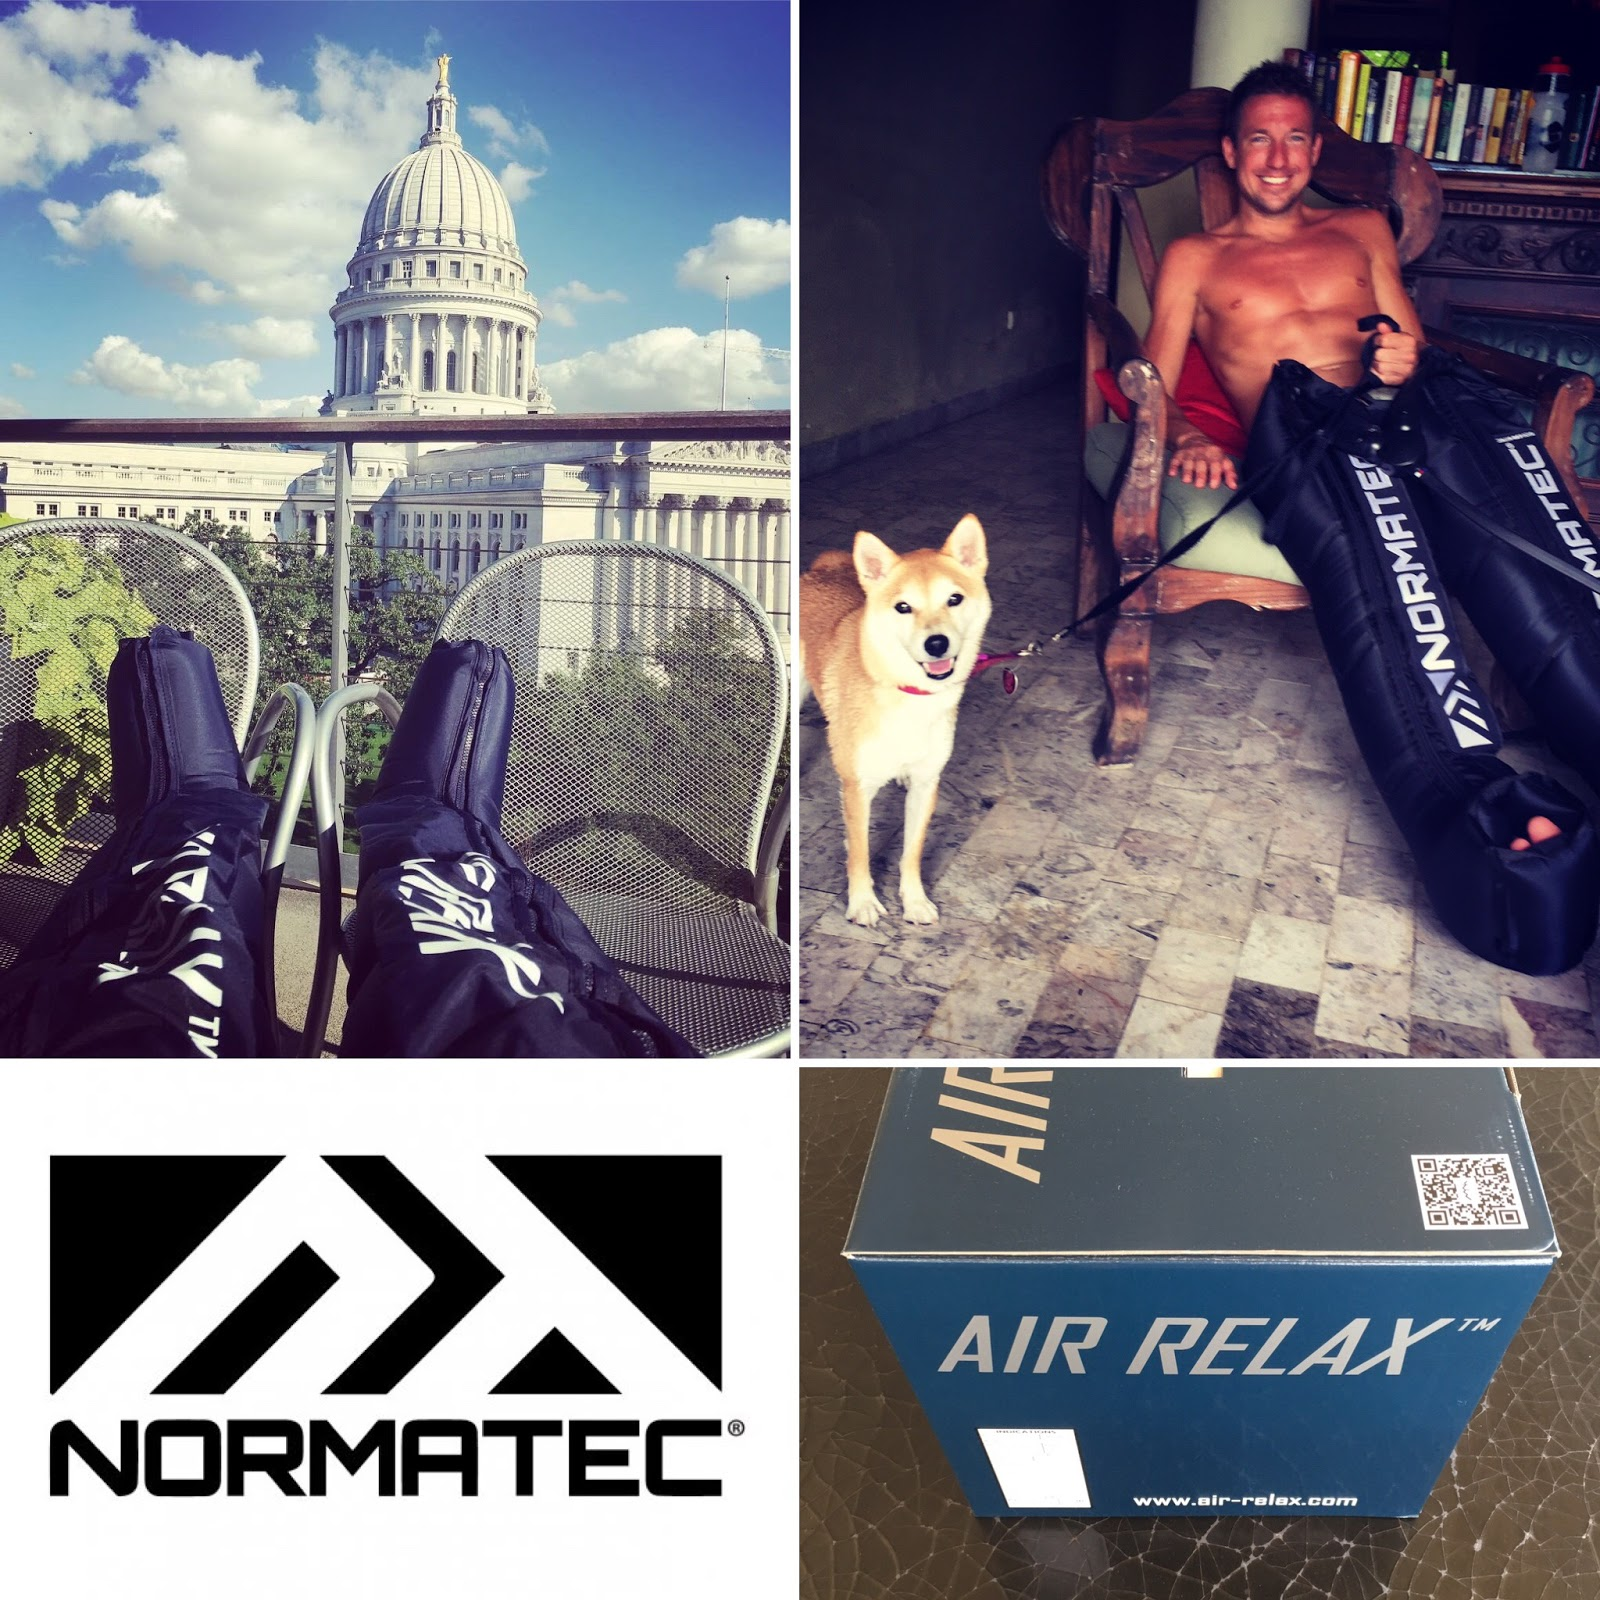 Air Relax vs Normatec Review